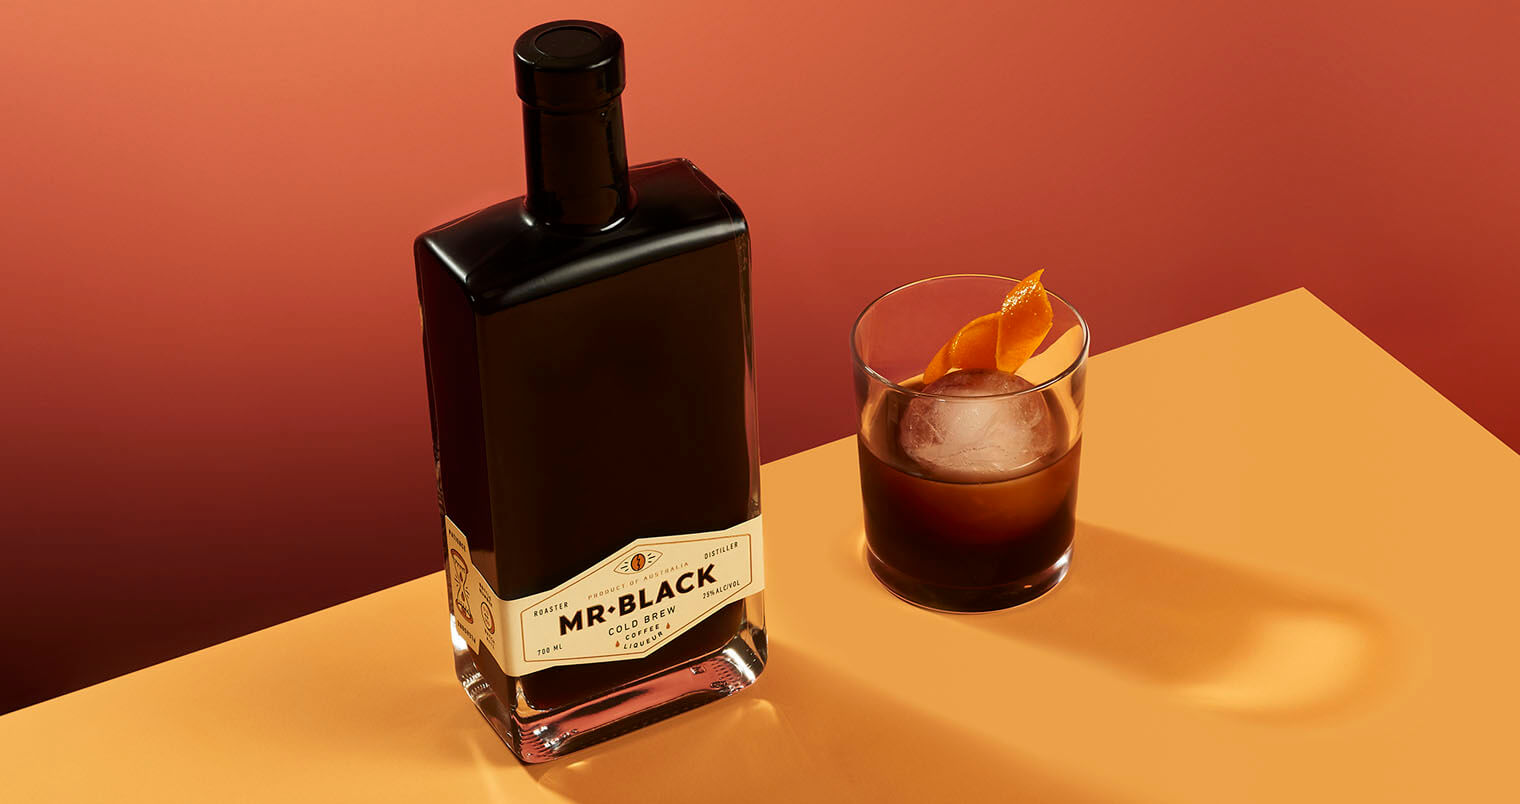 Mr Black Cold Fashioned